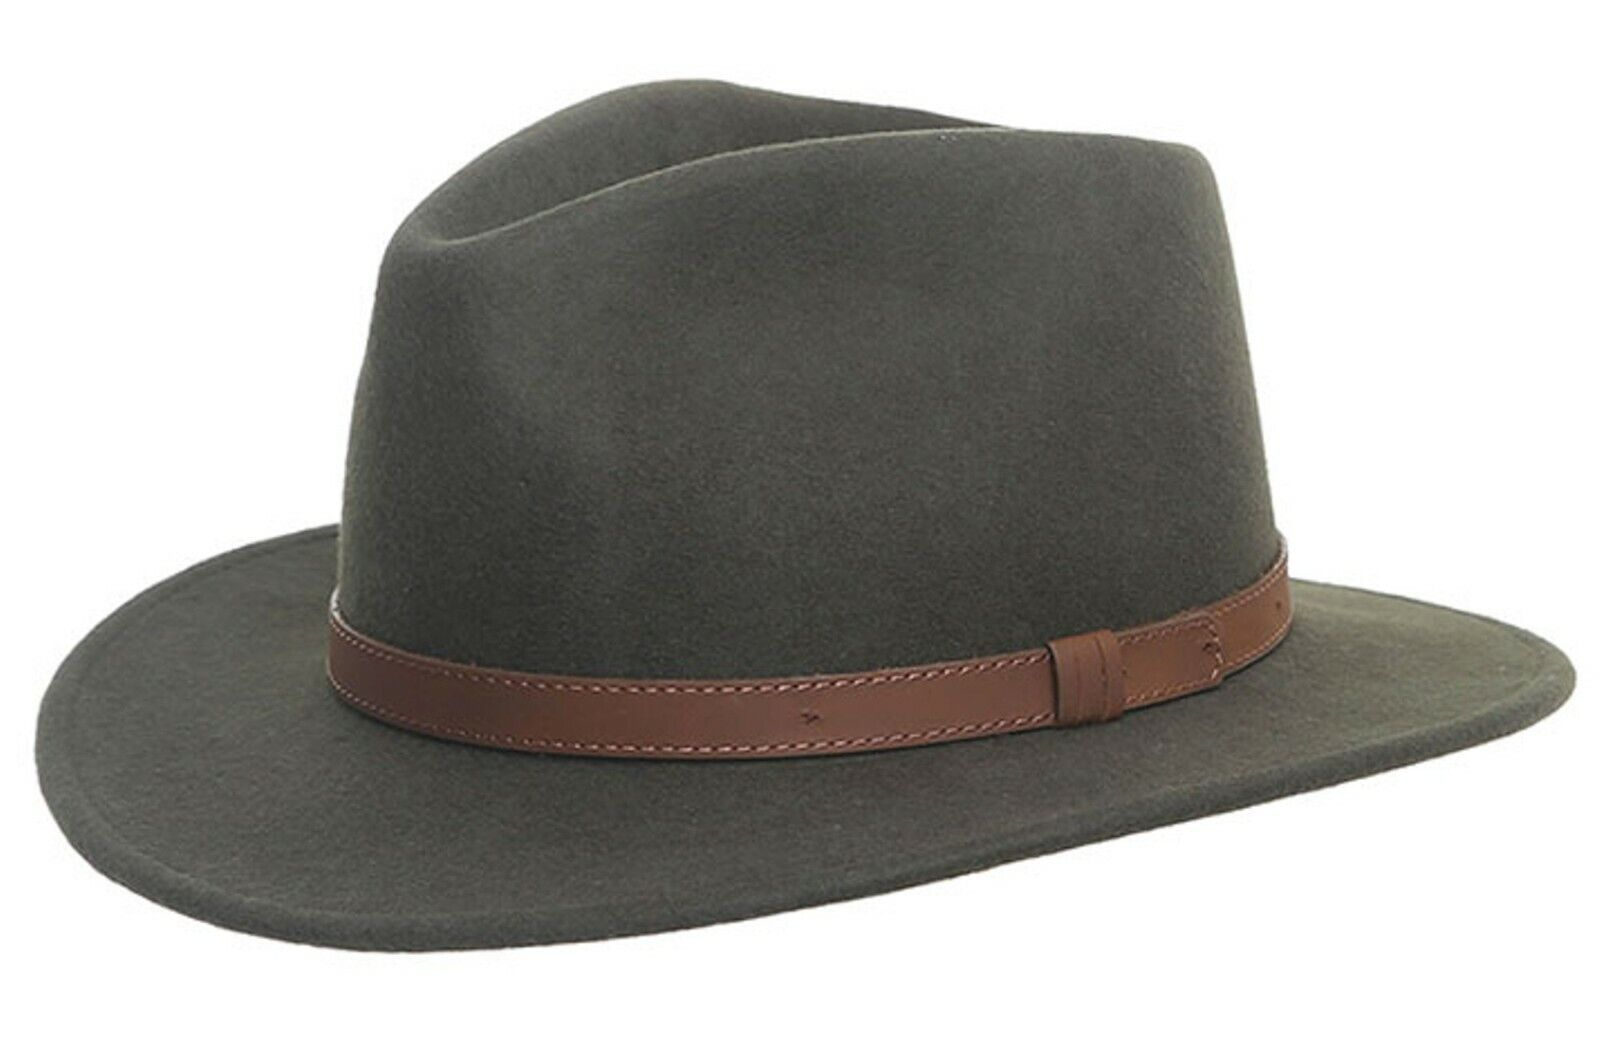 Packable Hand Made Fedora Trilby Showerproof Hat with Leather Band 100/% Wool